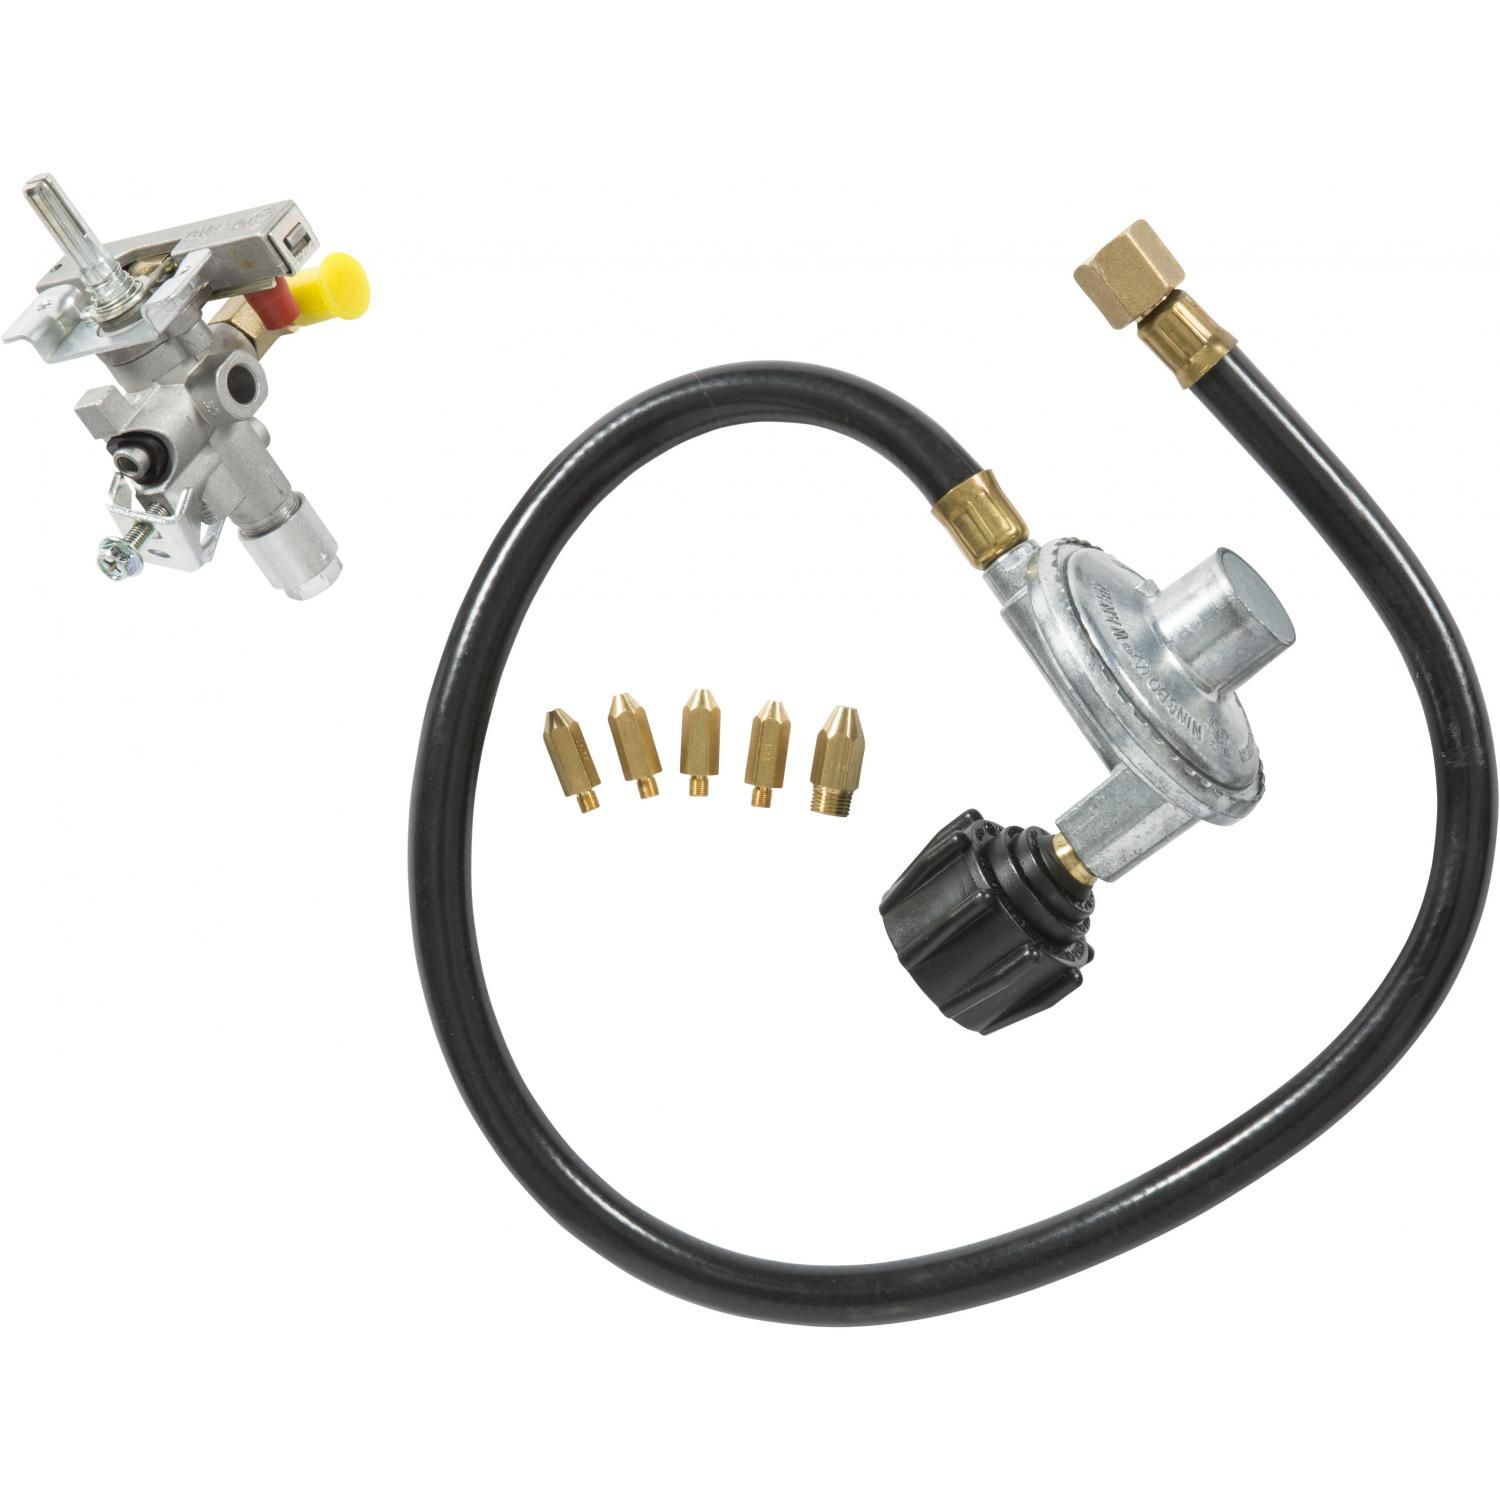 Coyote Conversion Kit For 36 42 Gas Grills Natural Gas To